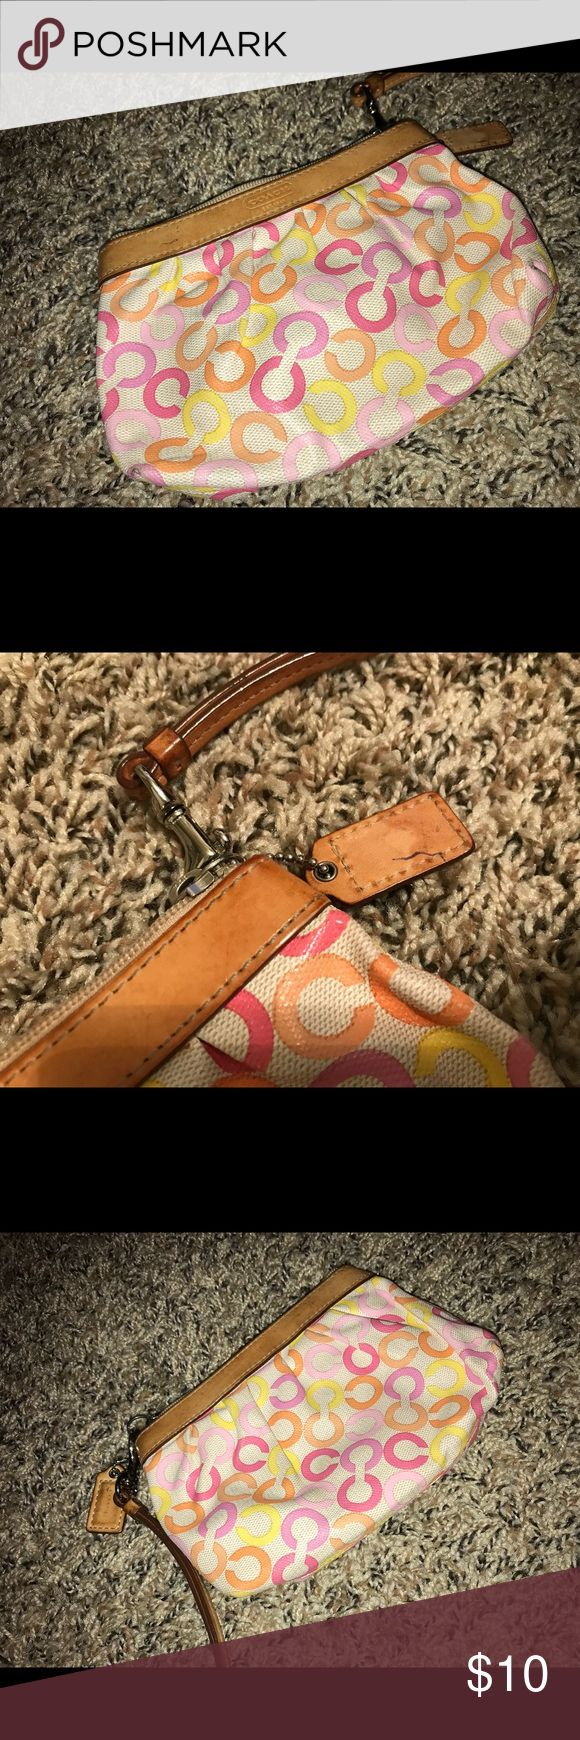 Coach Wristlet or Coin Purse or Clutch ✨ Small Coach Wristlet Has ink stains on exterior/interior (pictured) Still in usable condition Coach Bags Clutches & Wristlets